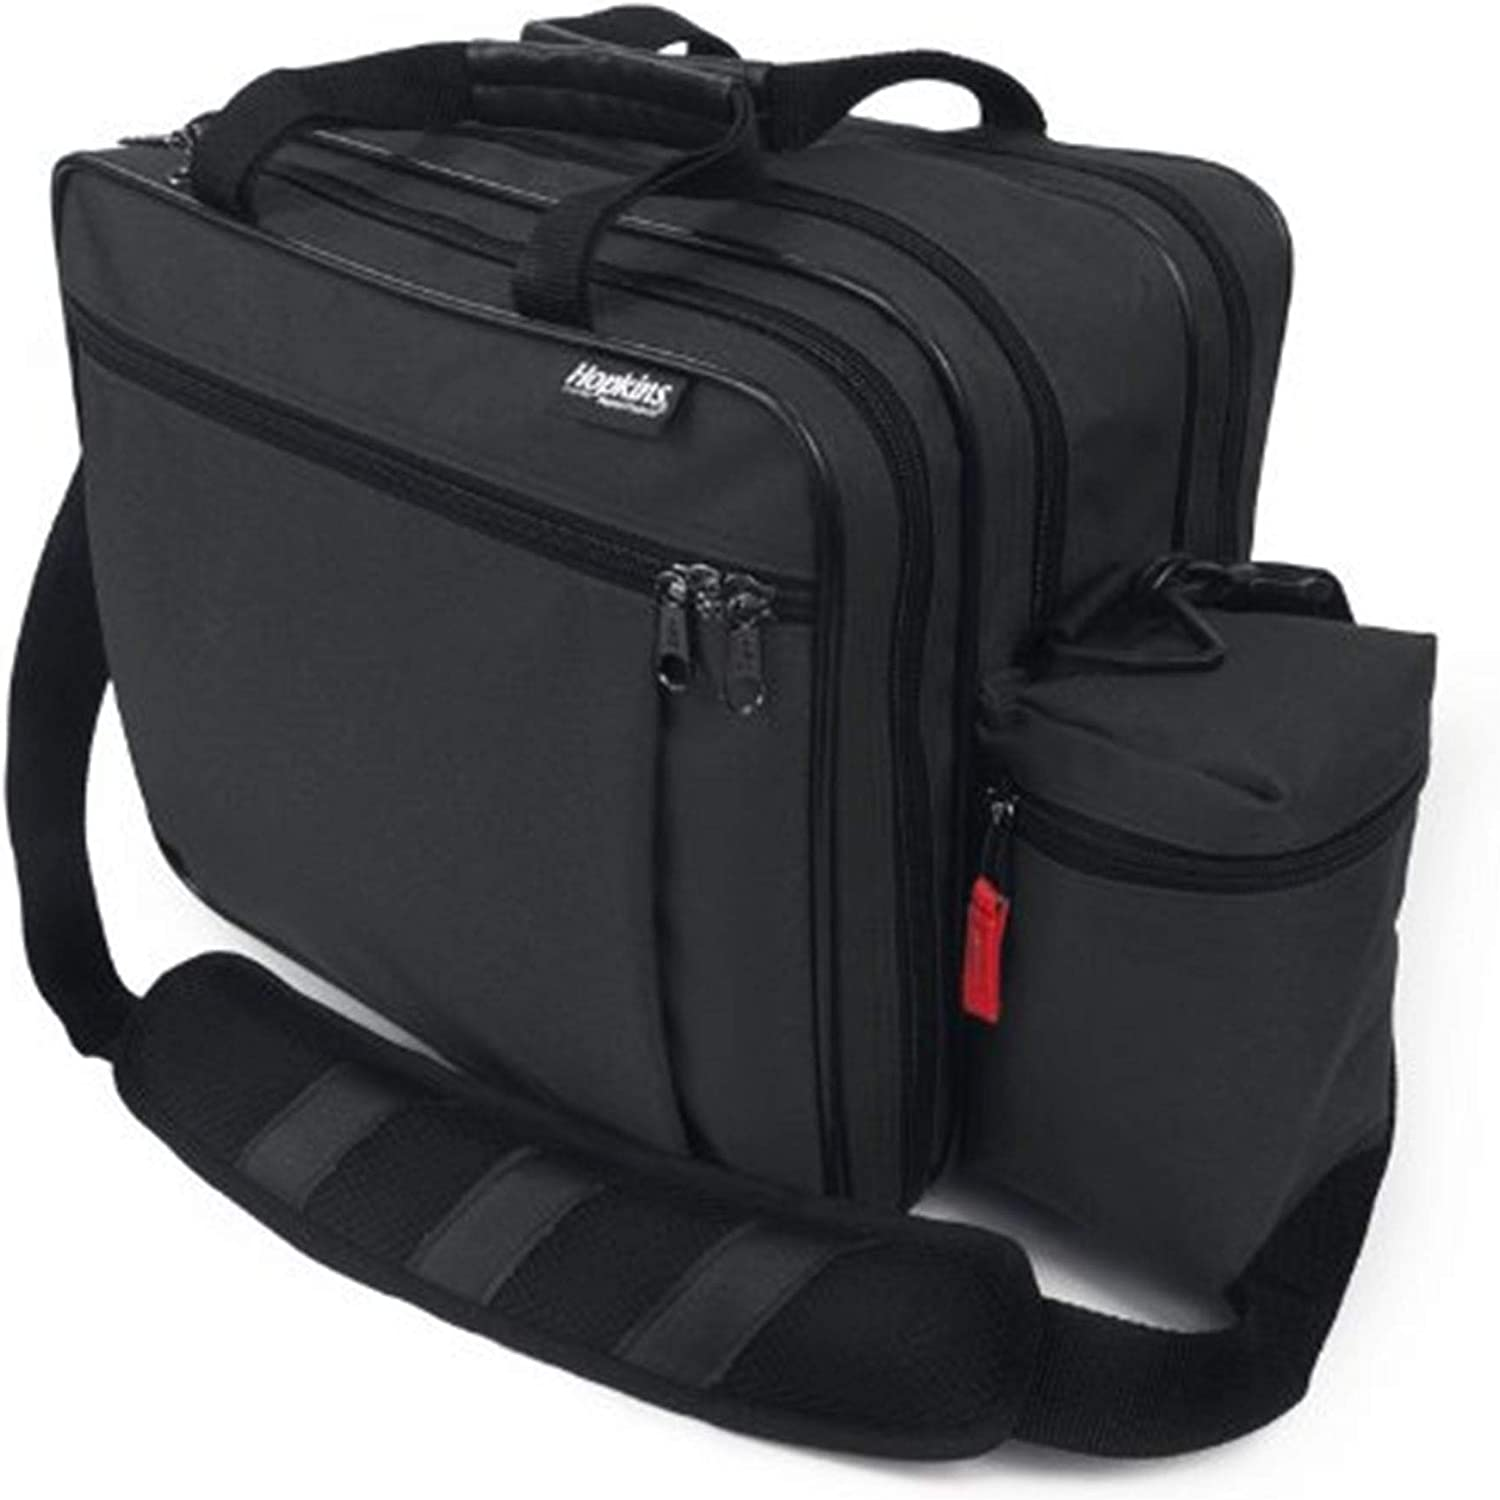 Hopkins Medical Products EZ View Medical Bag, Latex Free, Twenty Zippered Pockets, Lockable File Pocket, 600D Waterproof Polyester, Multiple Colors, 14 Inch x 11.75 Inch x 8 Inch, Black